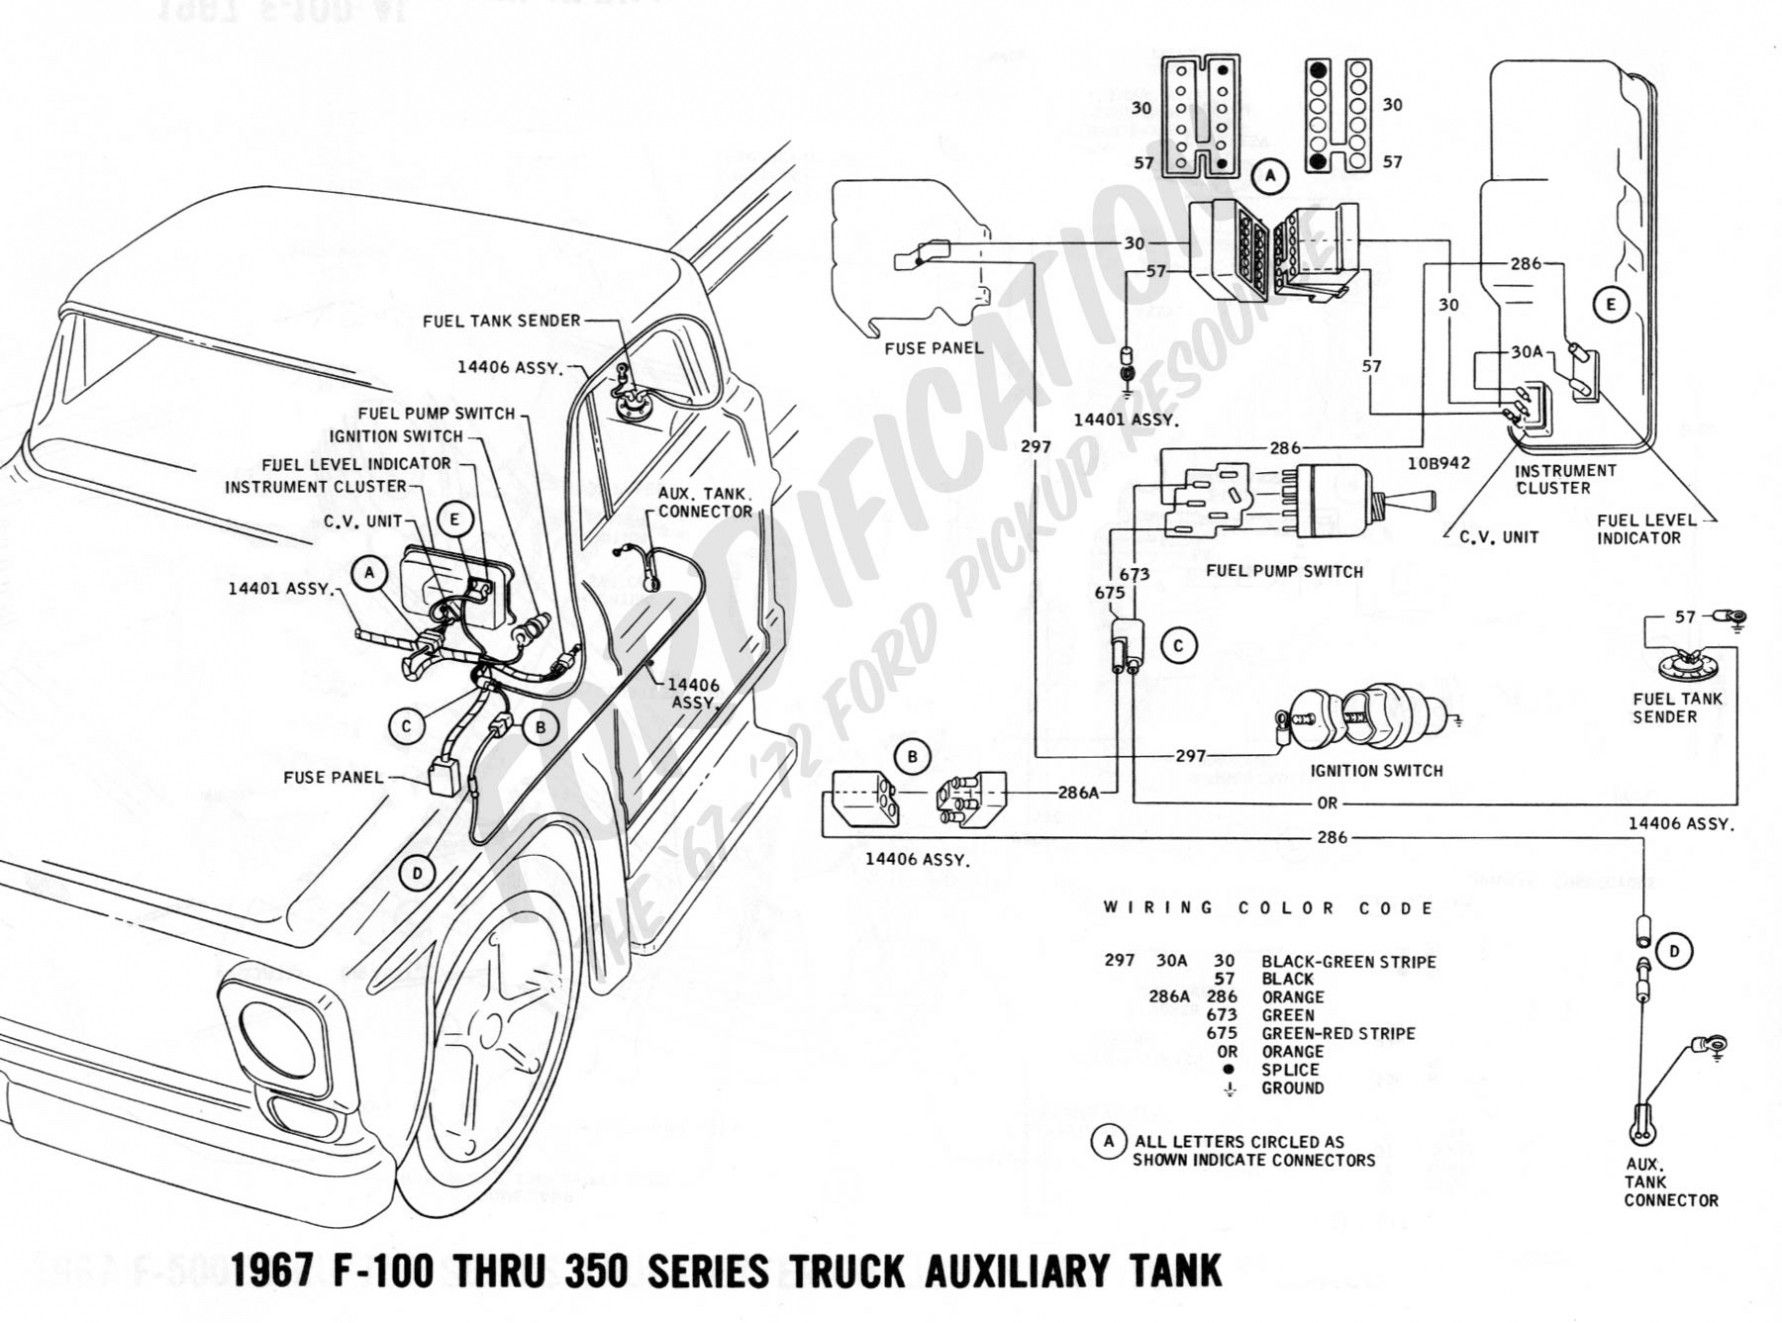 1987 Ford F700 Brake System Diagram Ford Truck Diagram Technical Drawing